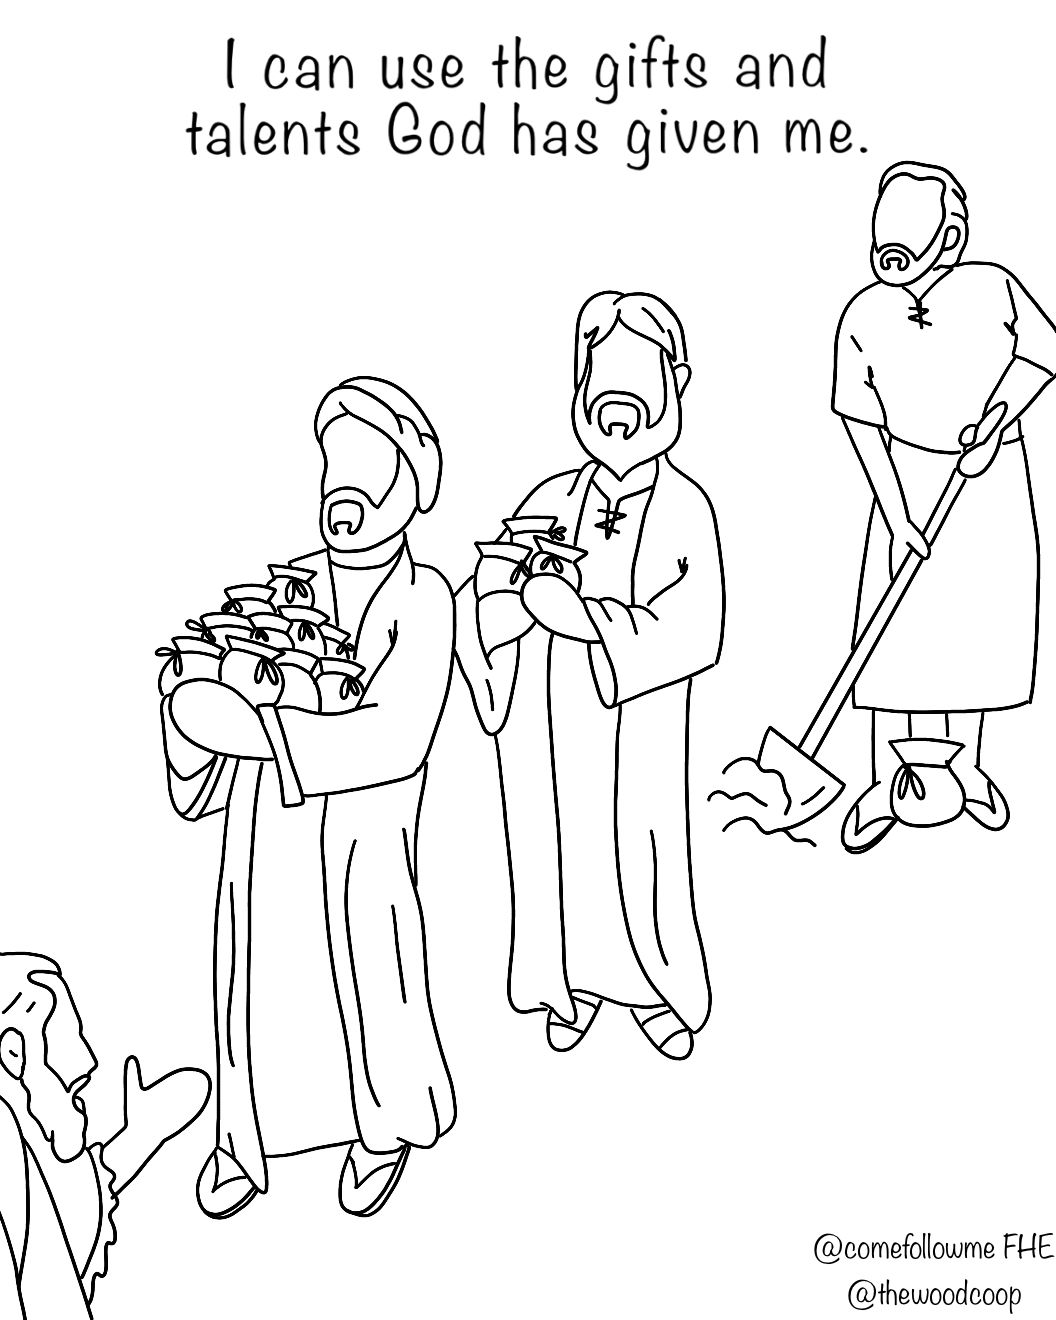 The Son Of Man Shall Come Talents Come Follow Me Fhe Parable Of The Talents Bible Lessons For Kids Christian Preschool